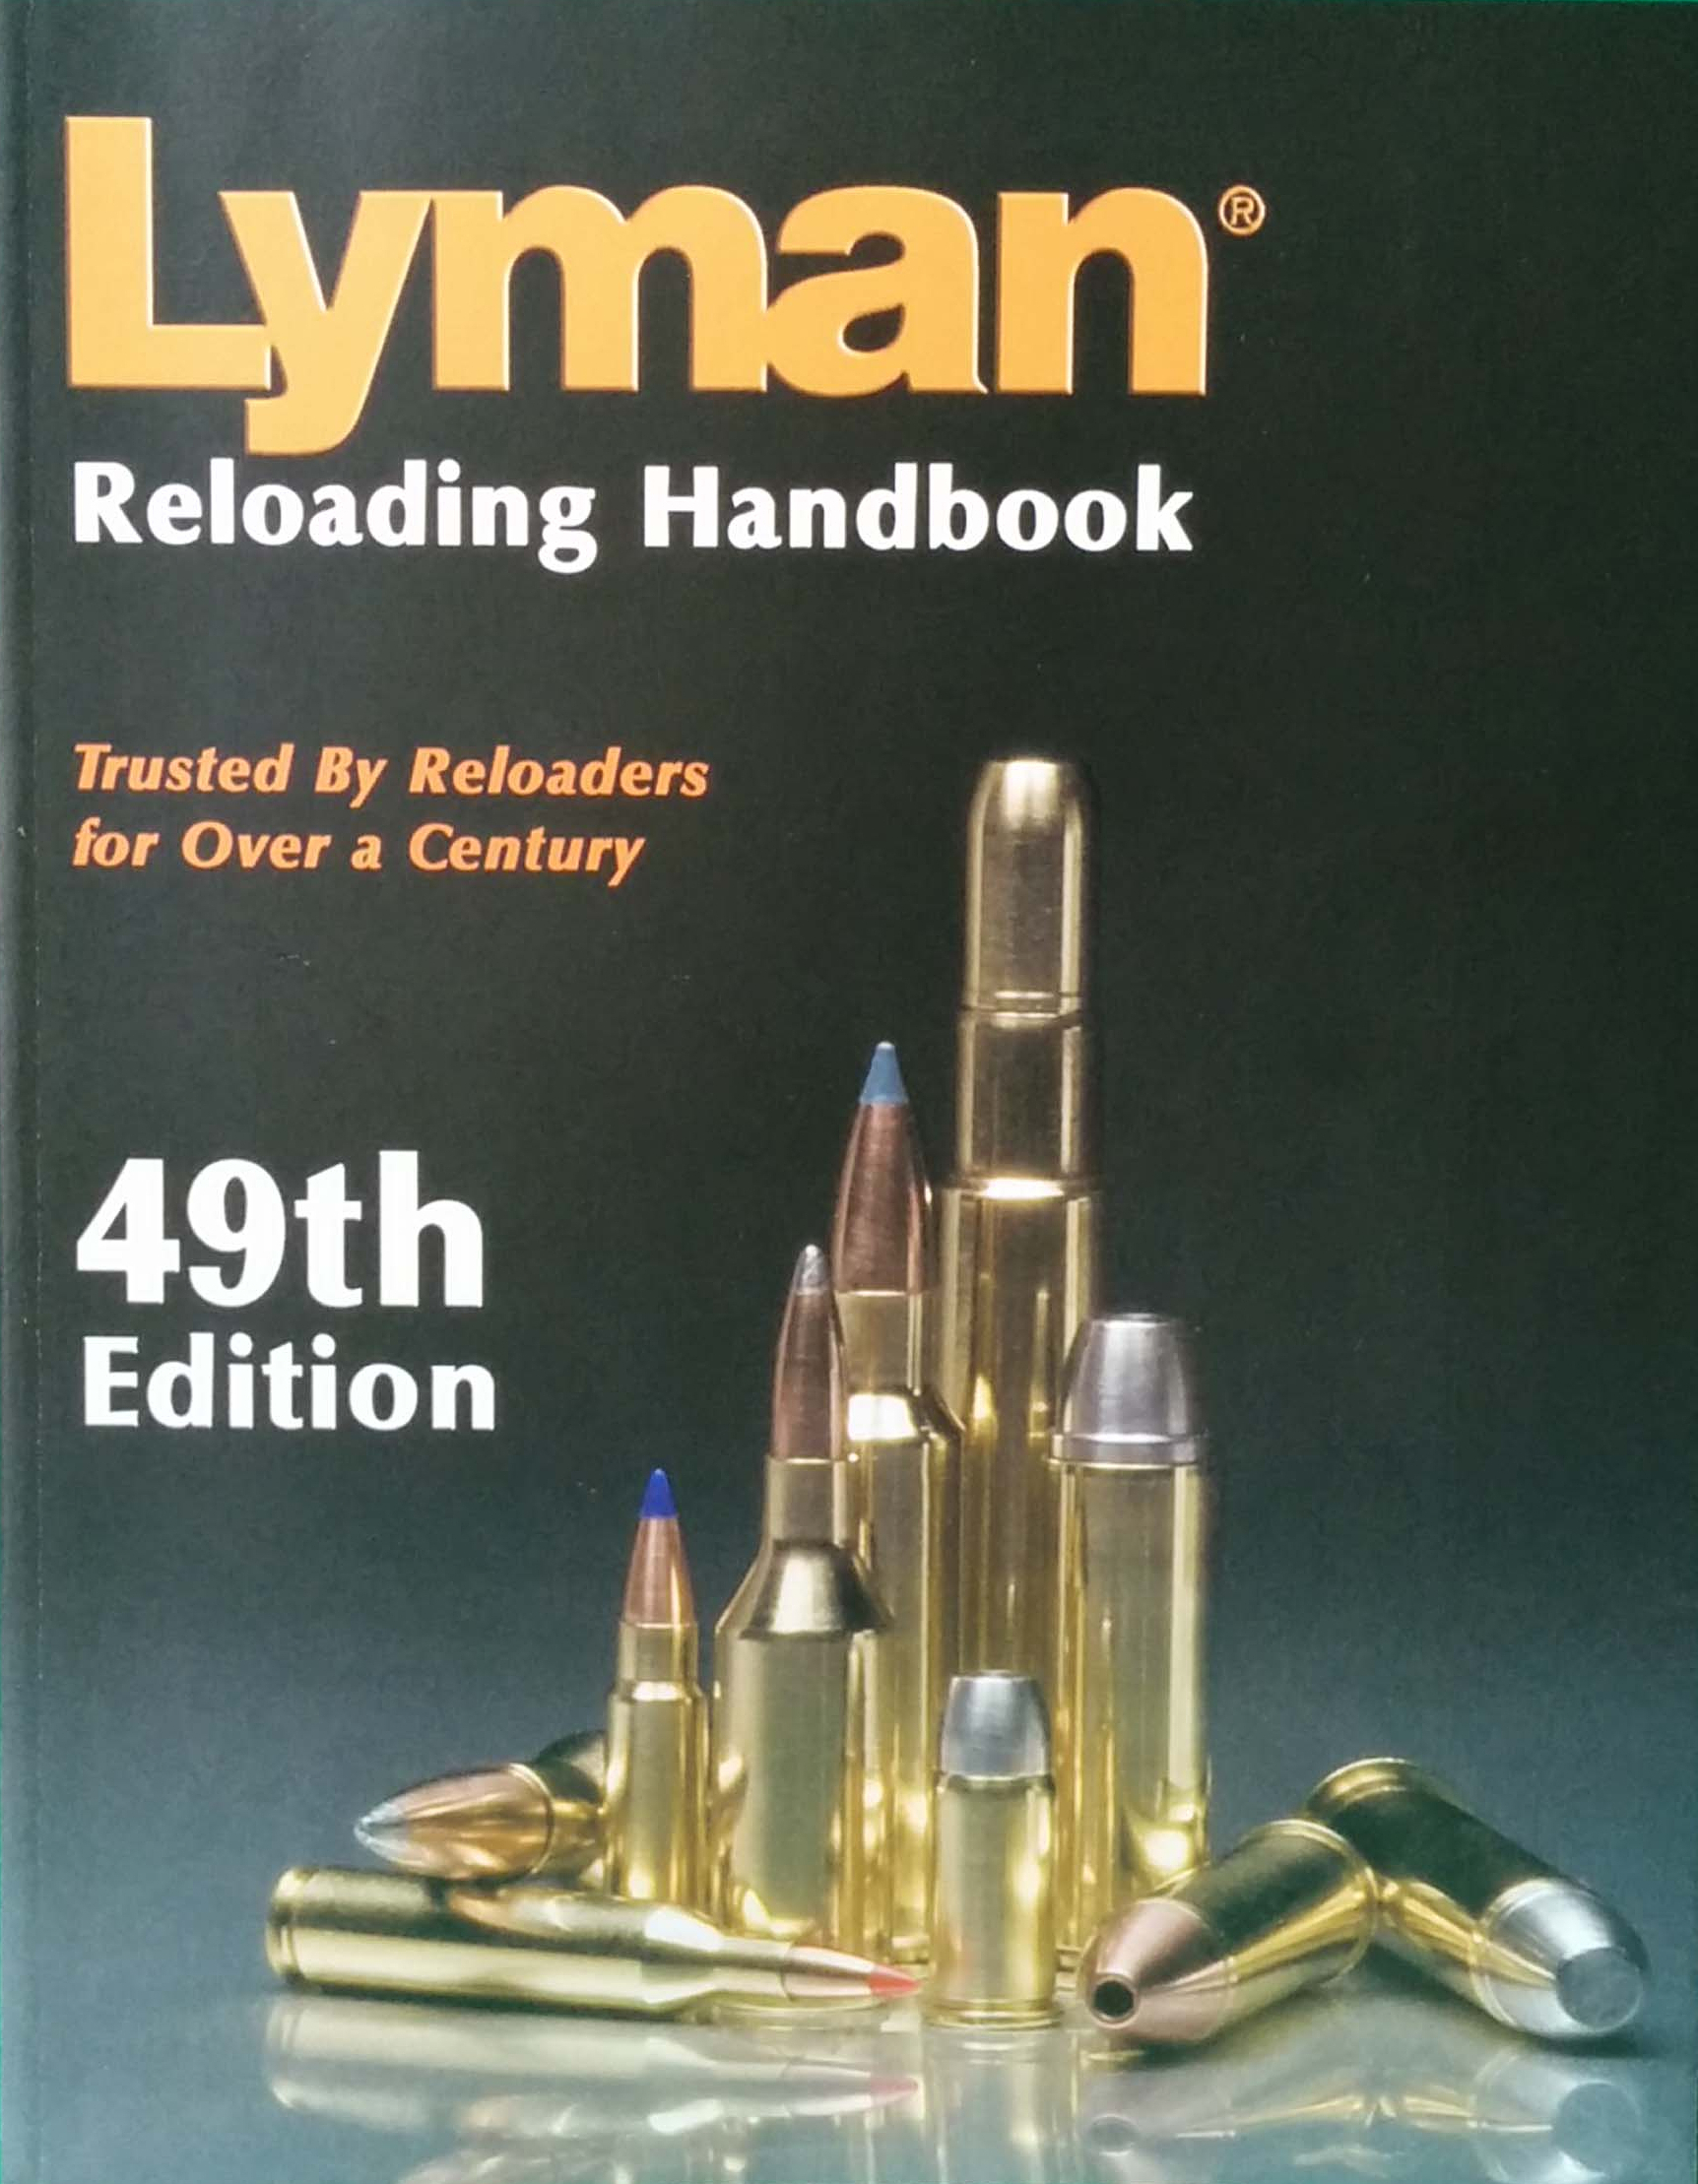 Christmas Books for Shooting and Reloading Aficionados-7